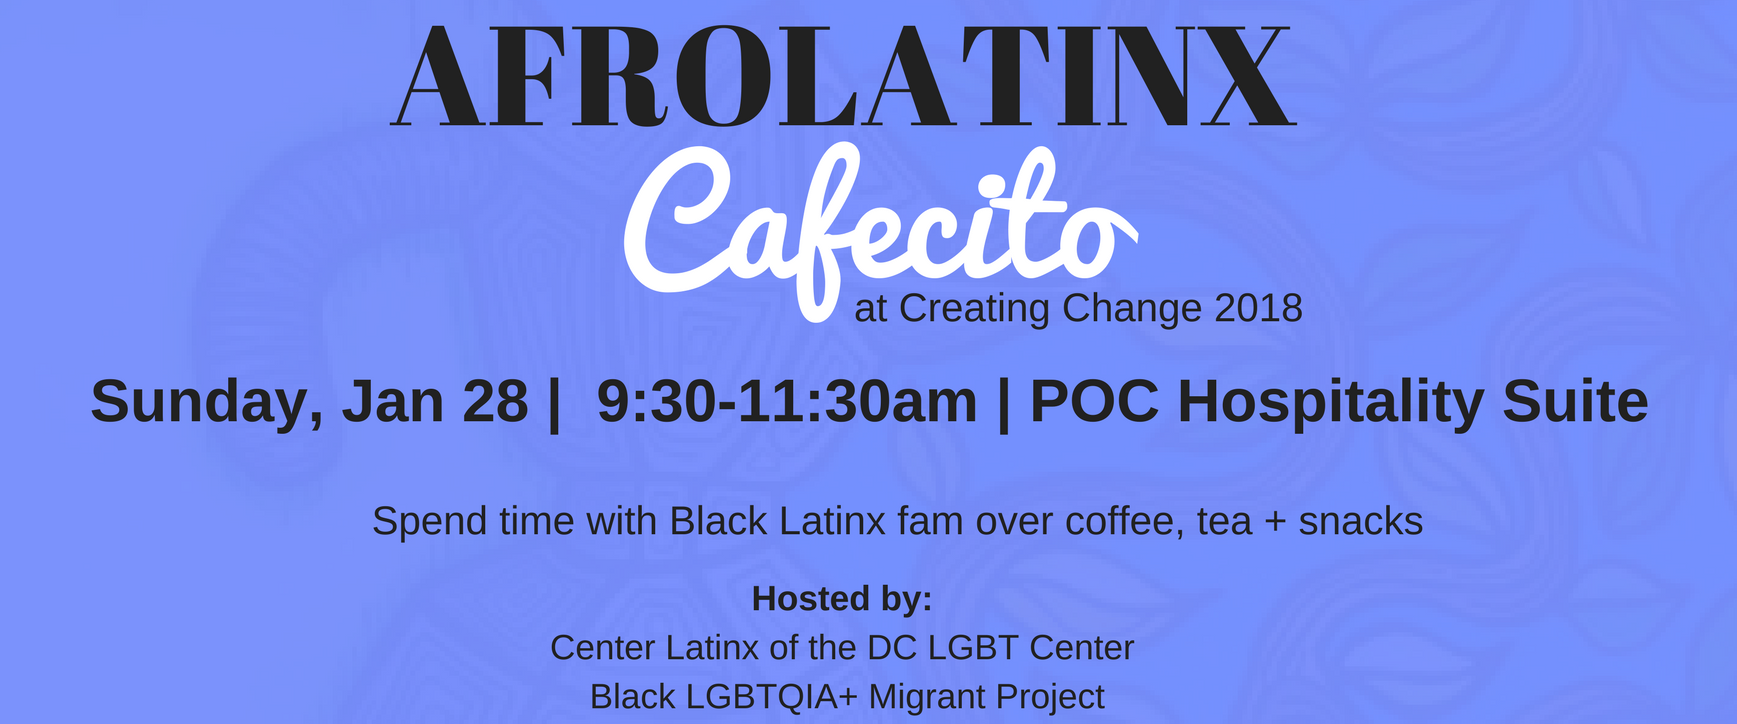 AfroLatinx Cafecito at Creating Change 2018!